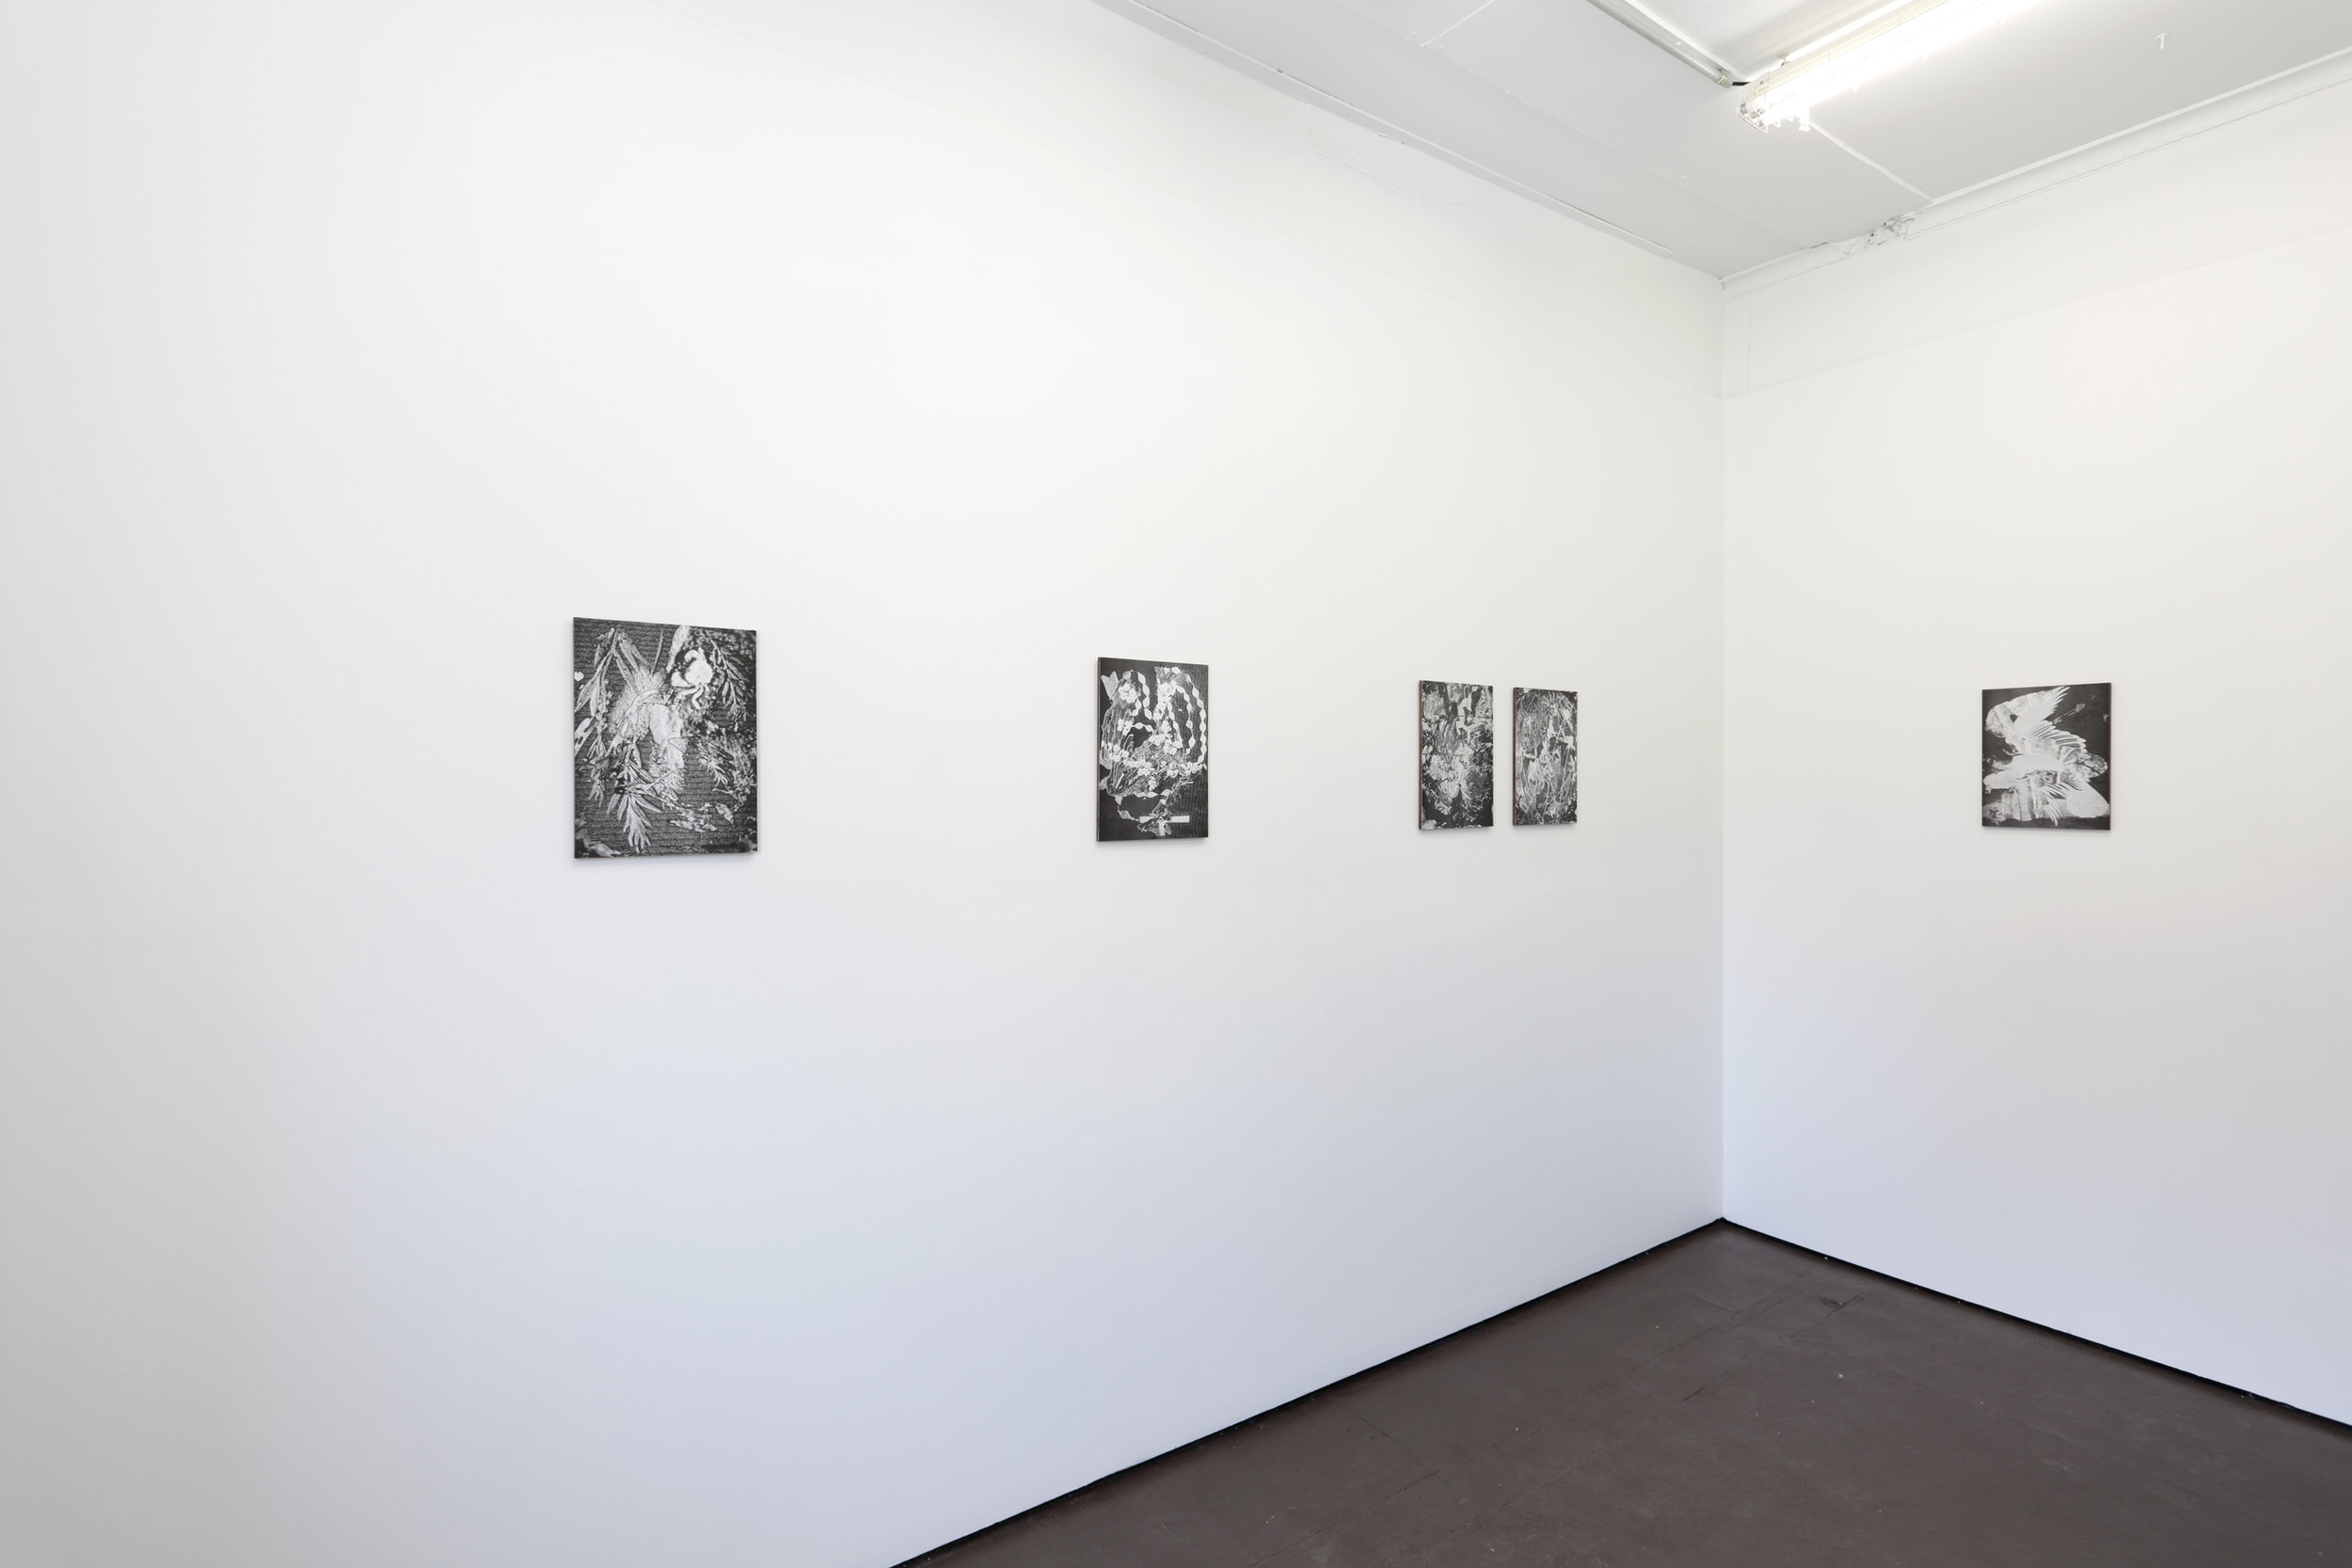 Exhibition View, The Sick Rose, David, Melbourne, 2019